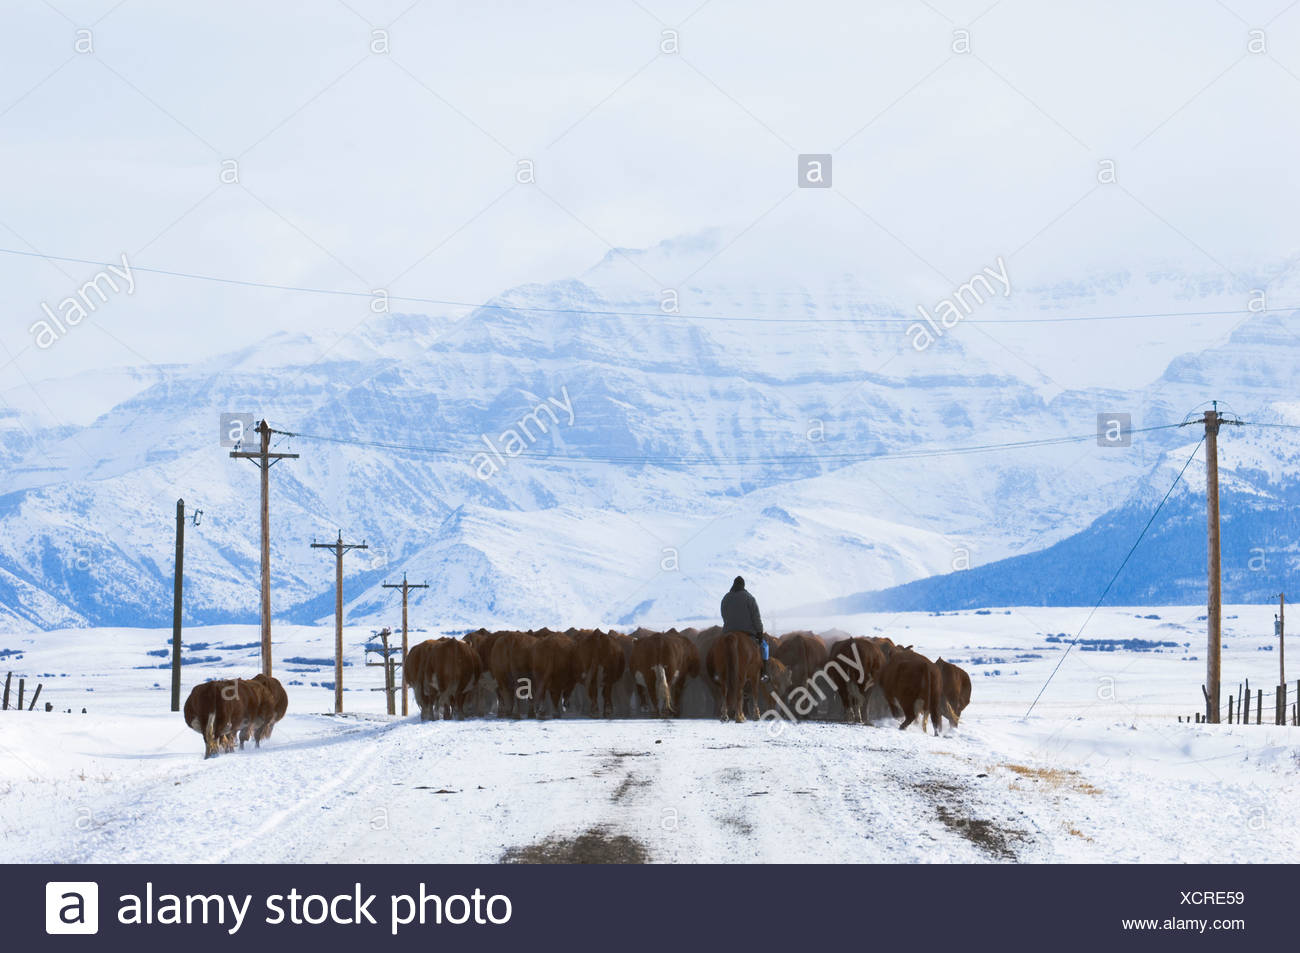 Cattle (Bos taurus) Drive. Driving herds along roads is a common way to move them from one field to another. Country road, south - Stock Image